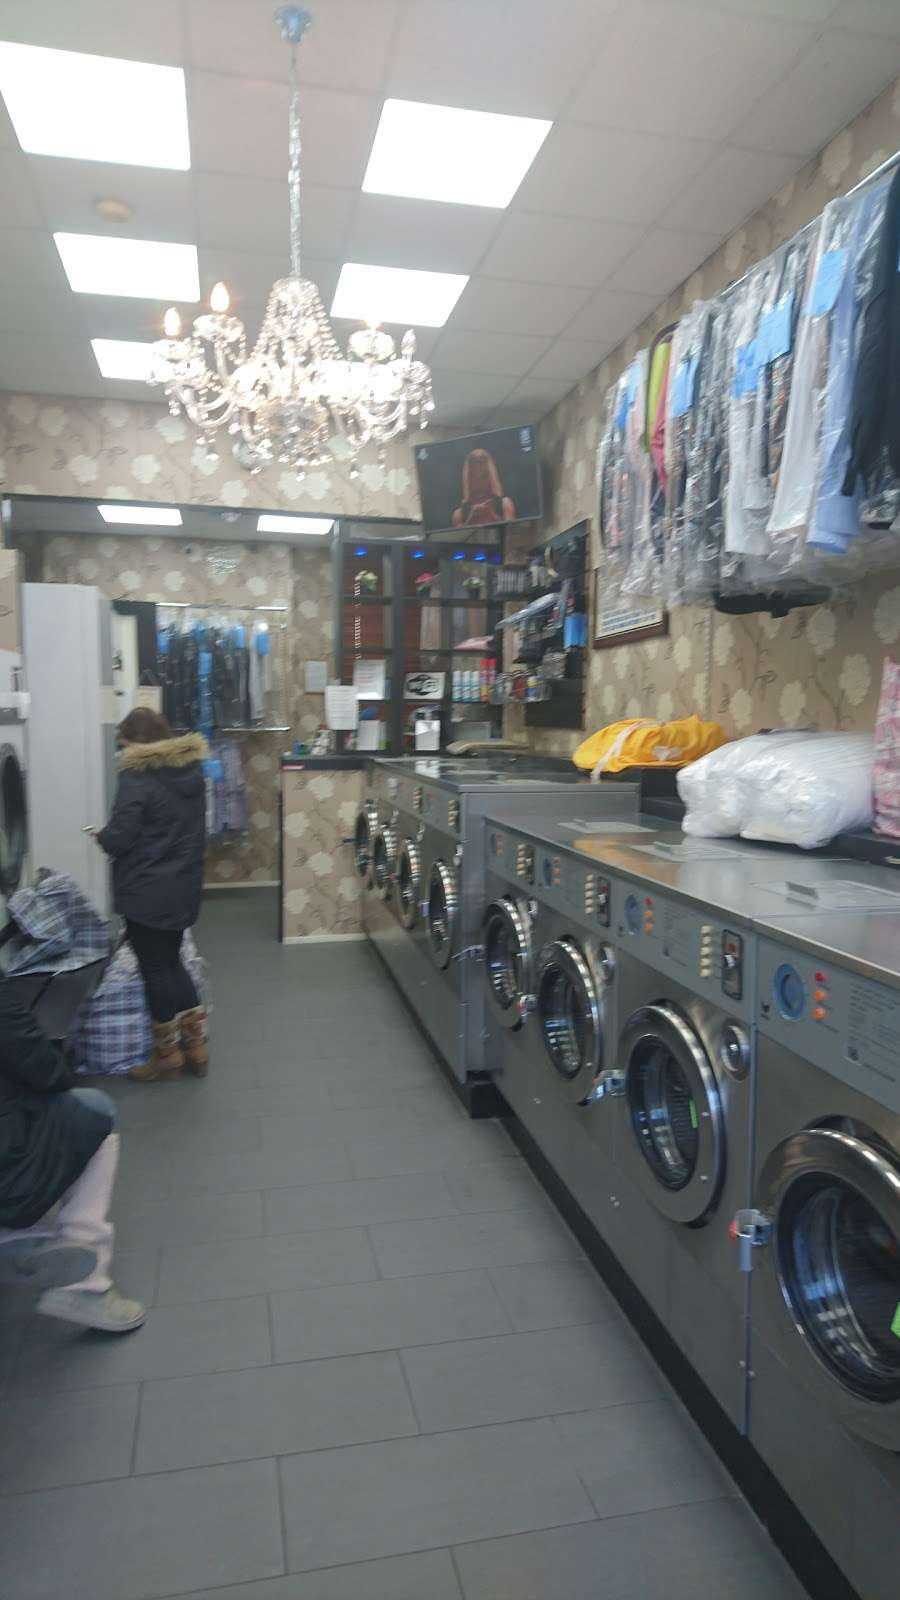 King Dry Cleaning & Laundrette - laundry  | Photo 8 of 10 | Address: 35 Church Rd, London NW4 4EB, UK | Phone: 020 8201 5050